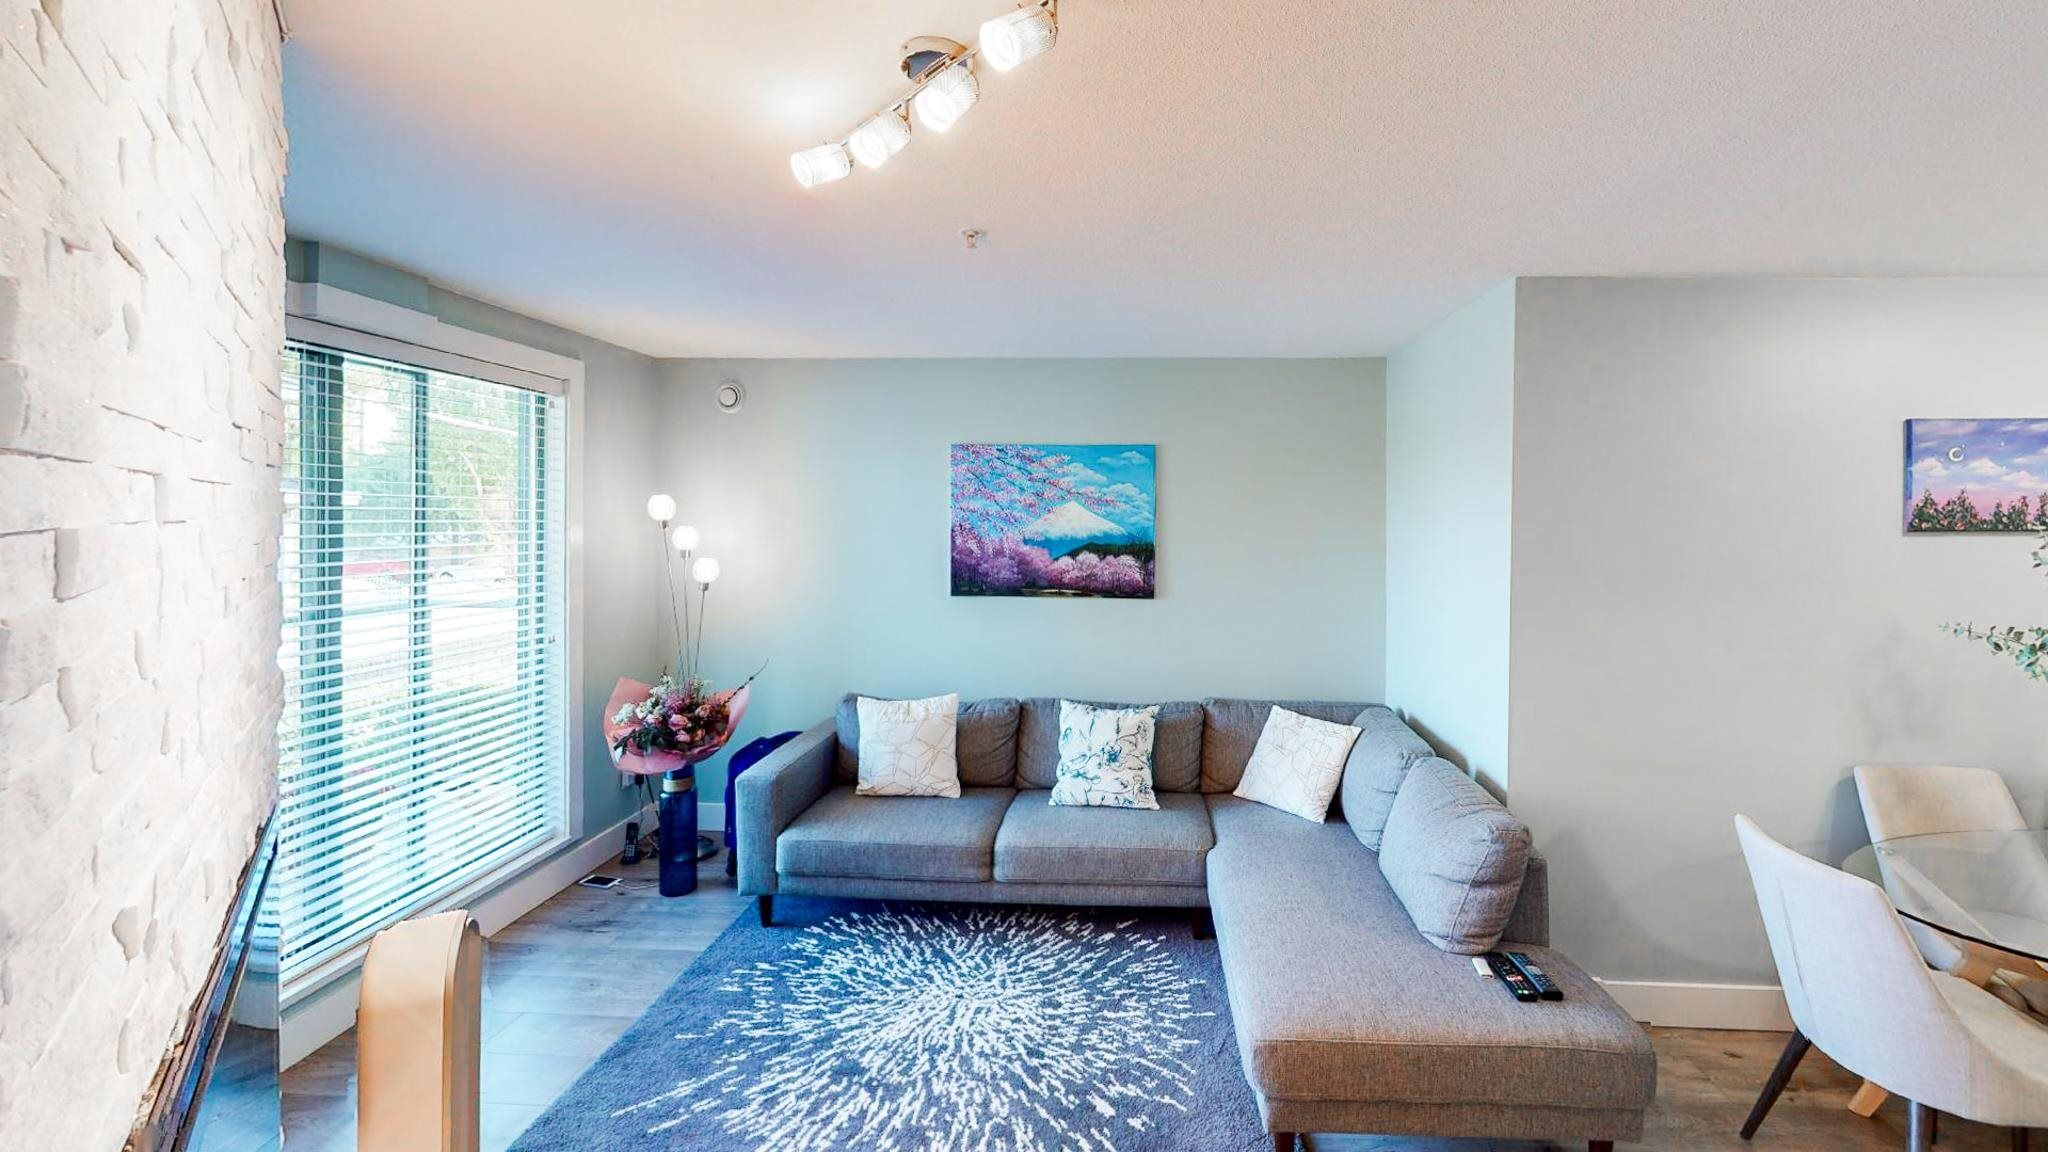 """Main Photo: 211 5818 LINCOLN Street in Vancouver: Killarney VE Condo for sale in """"LINCOLN PLACE"""" (Vancouver East)  : MLS®# R2621687"""